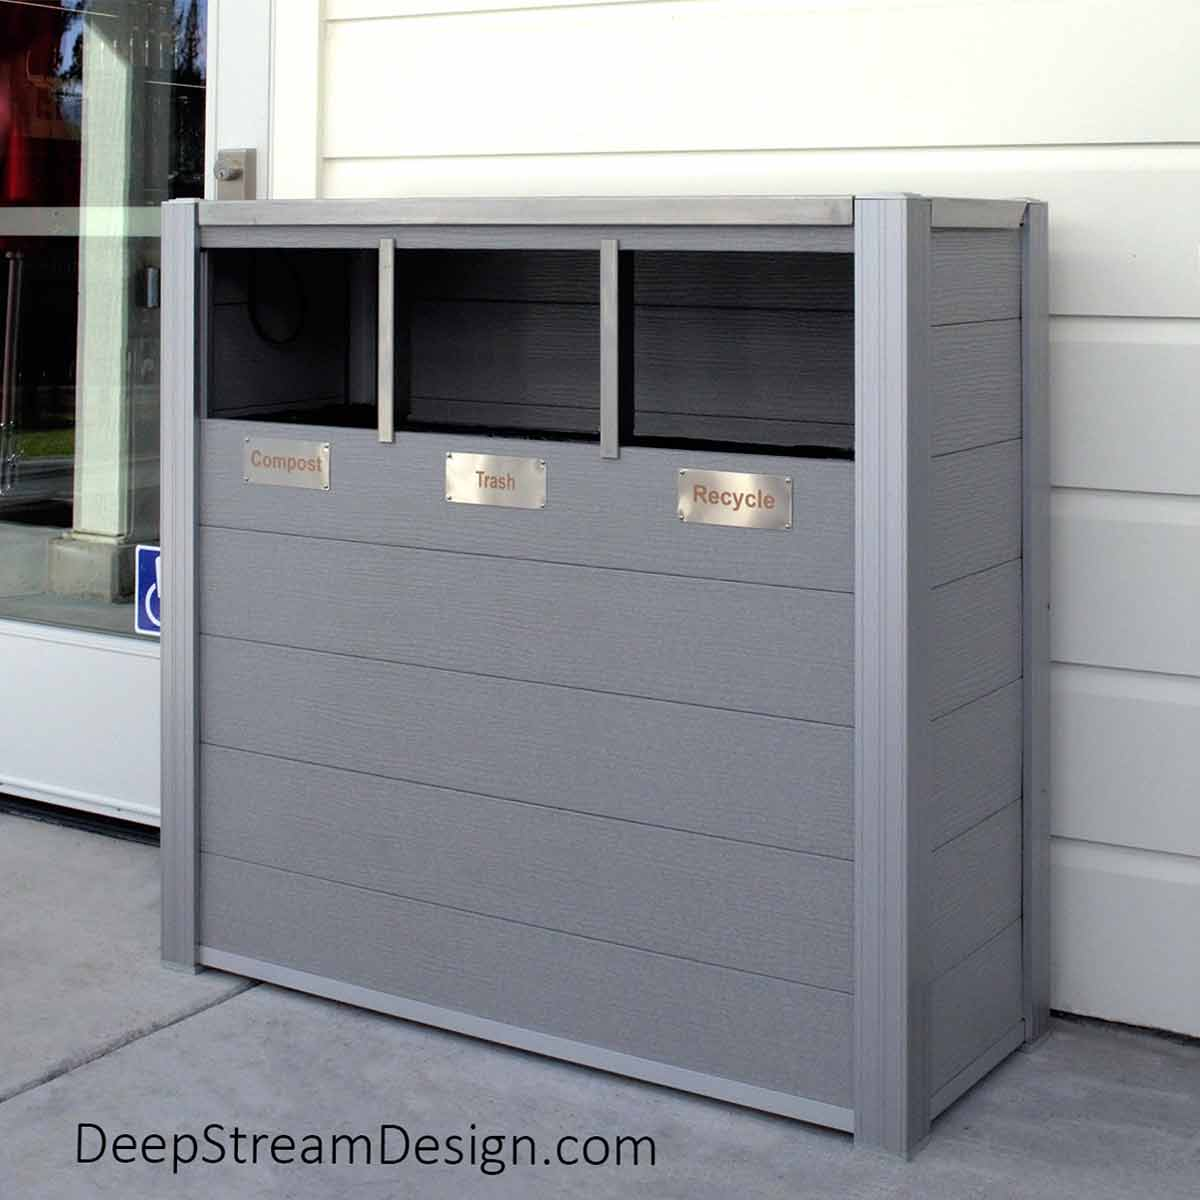 Oahu triple-stream Modern Commercial Combined Recycling and Trash Receptacle with 21-gallon leakproof inner bins, no touch openings, constructed with light gray recycled plastic lumber pictured in front of a Napa Valley resort's general store.